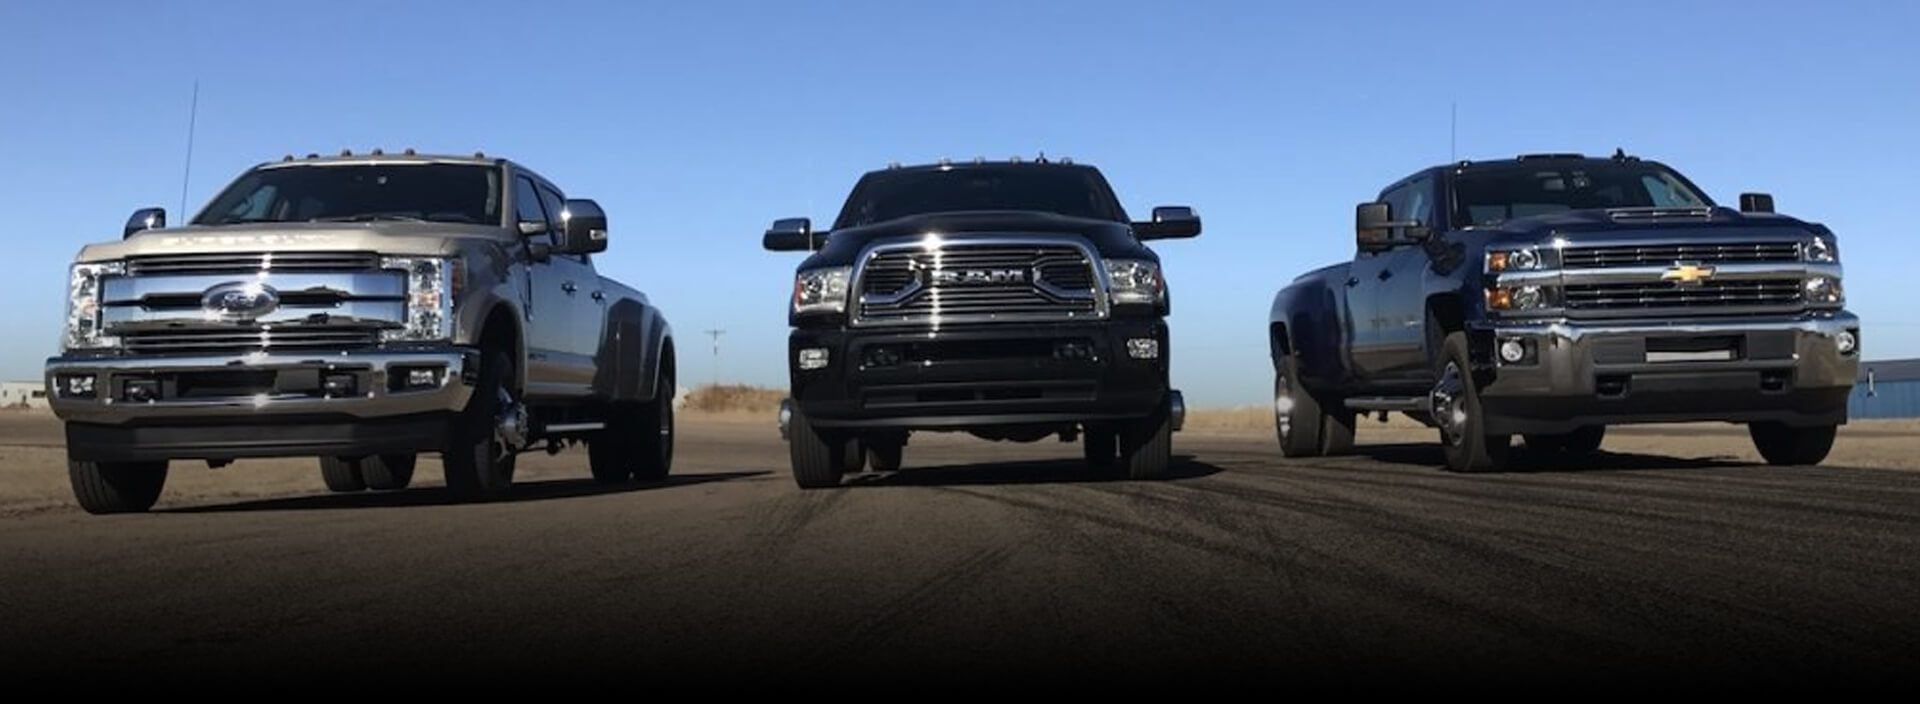 The Biggest Diesel Truck Dealer in 10 States| Ford, Chevy, Dodge ...